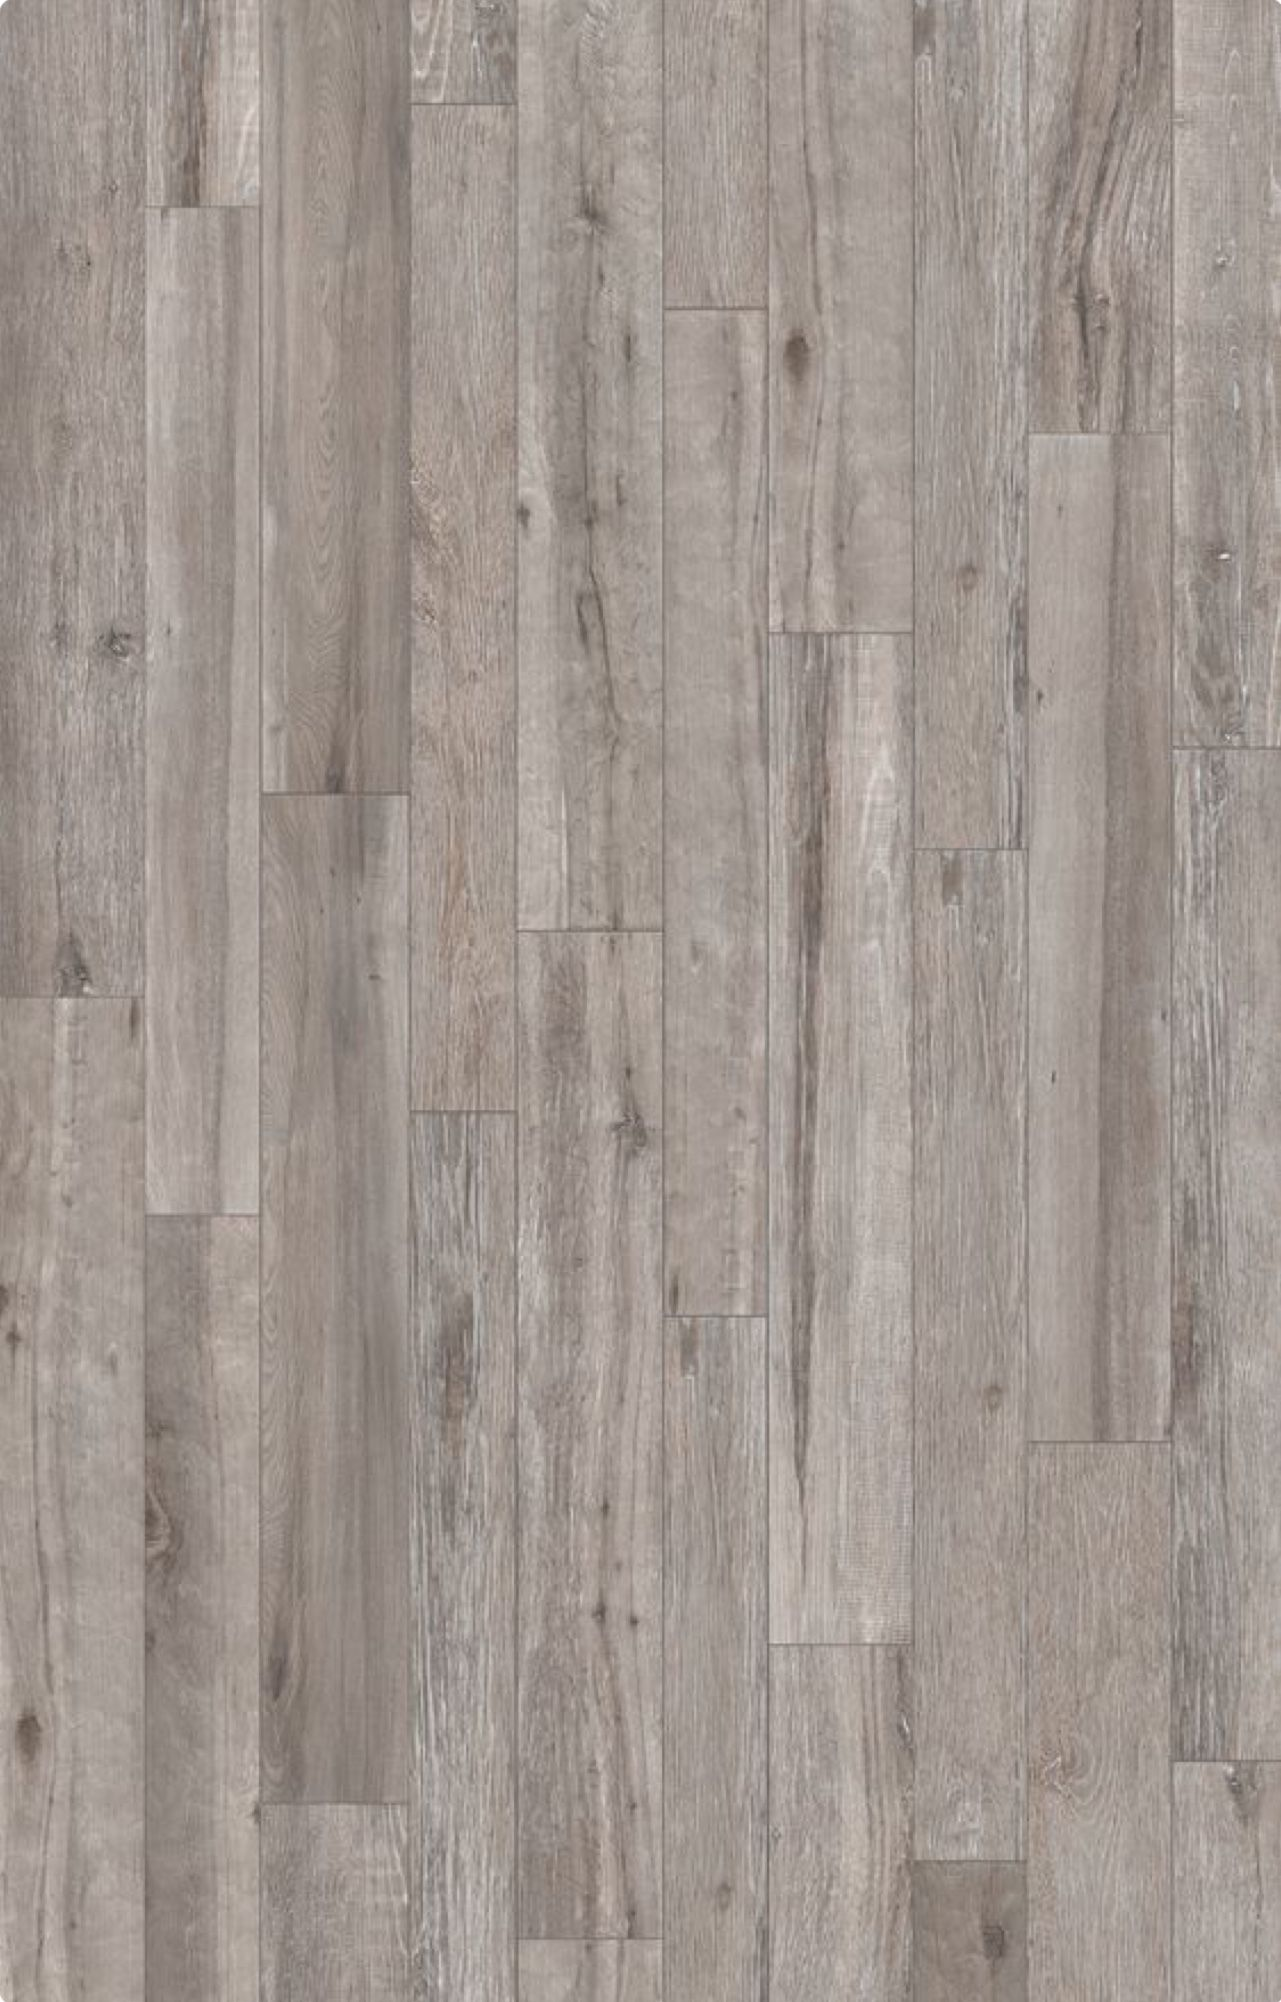 Pin by emad on Design Wood floor texture, Wall texture